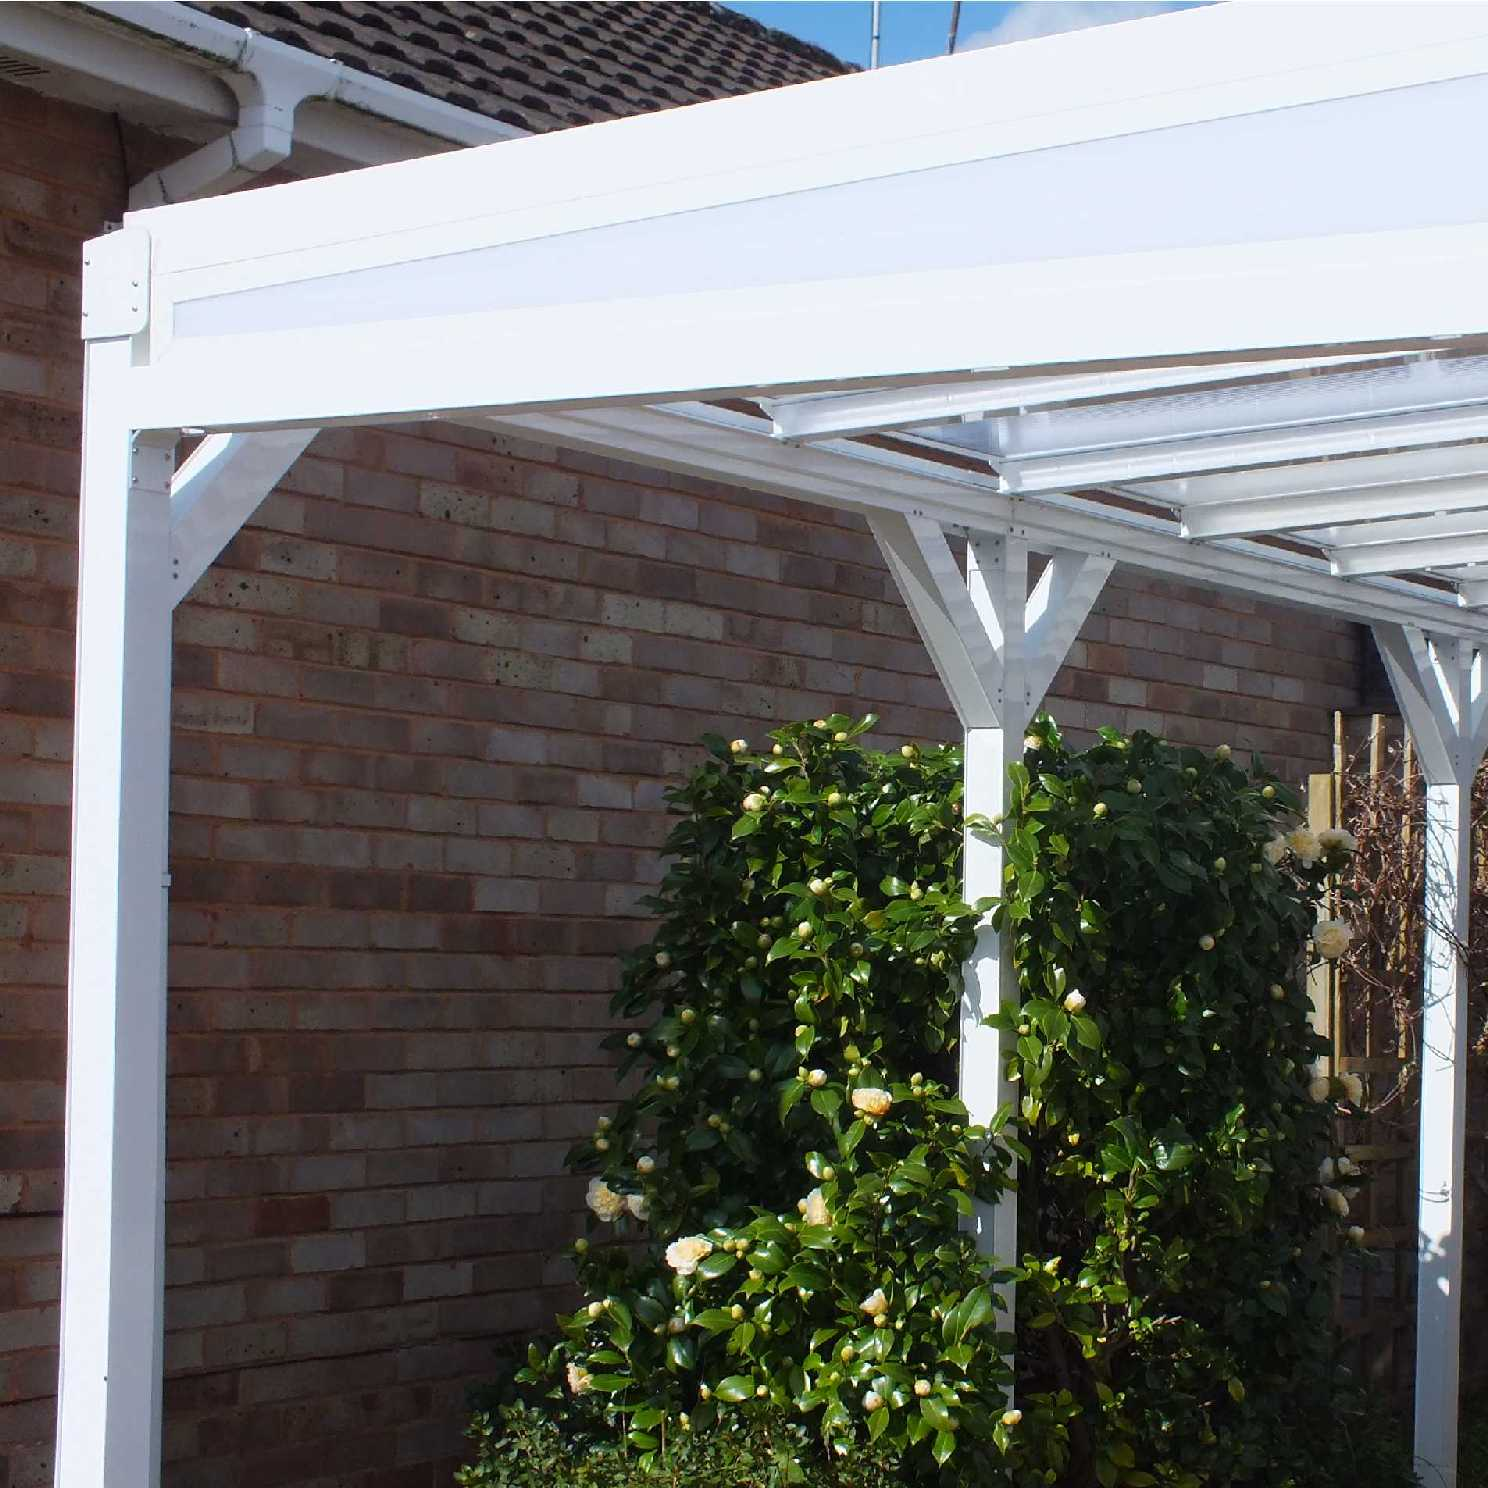 Omega Smart Lean-To Canopy with 16mm Polycarbonate Glazing - 6.3m (W) x 1.5m (P), (4) Supporting Posts from Omega Build